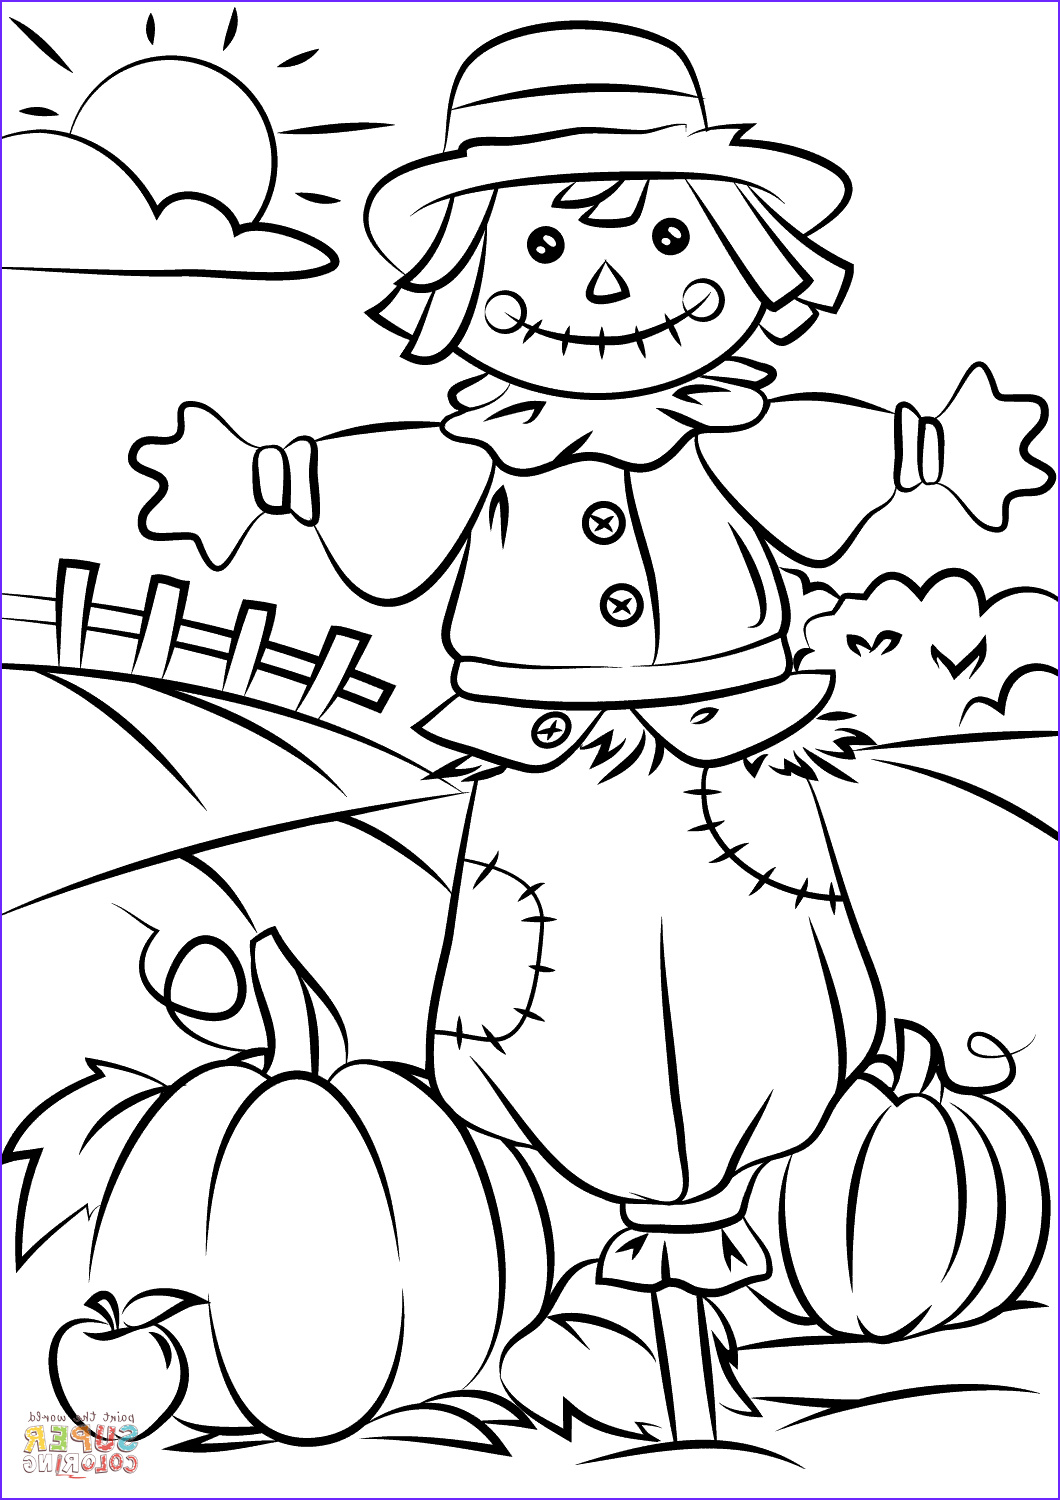 Fall Coloring Pages Free Unique Photos Coloring Autumn Scene with Scarecrow Coloring Page Free